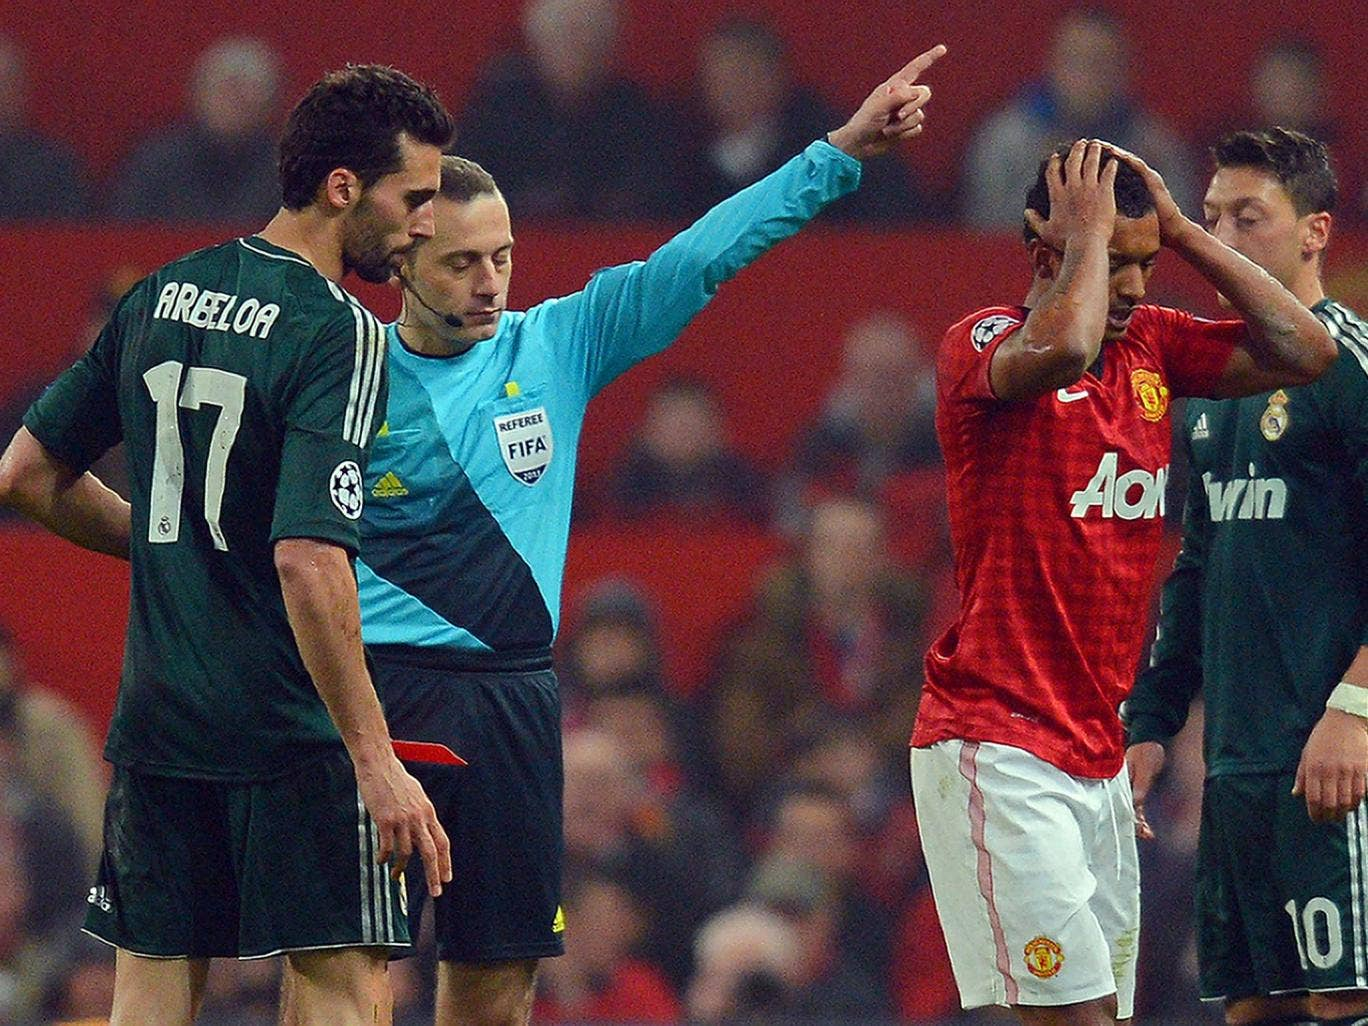 Cuneyt Cakir shows Nani a red card